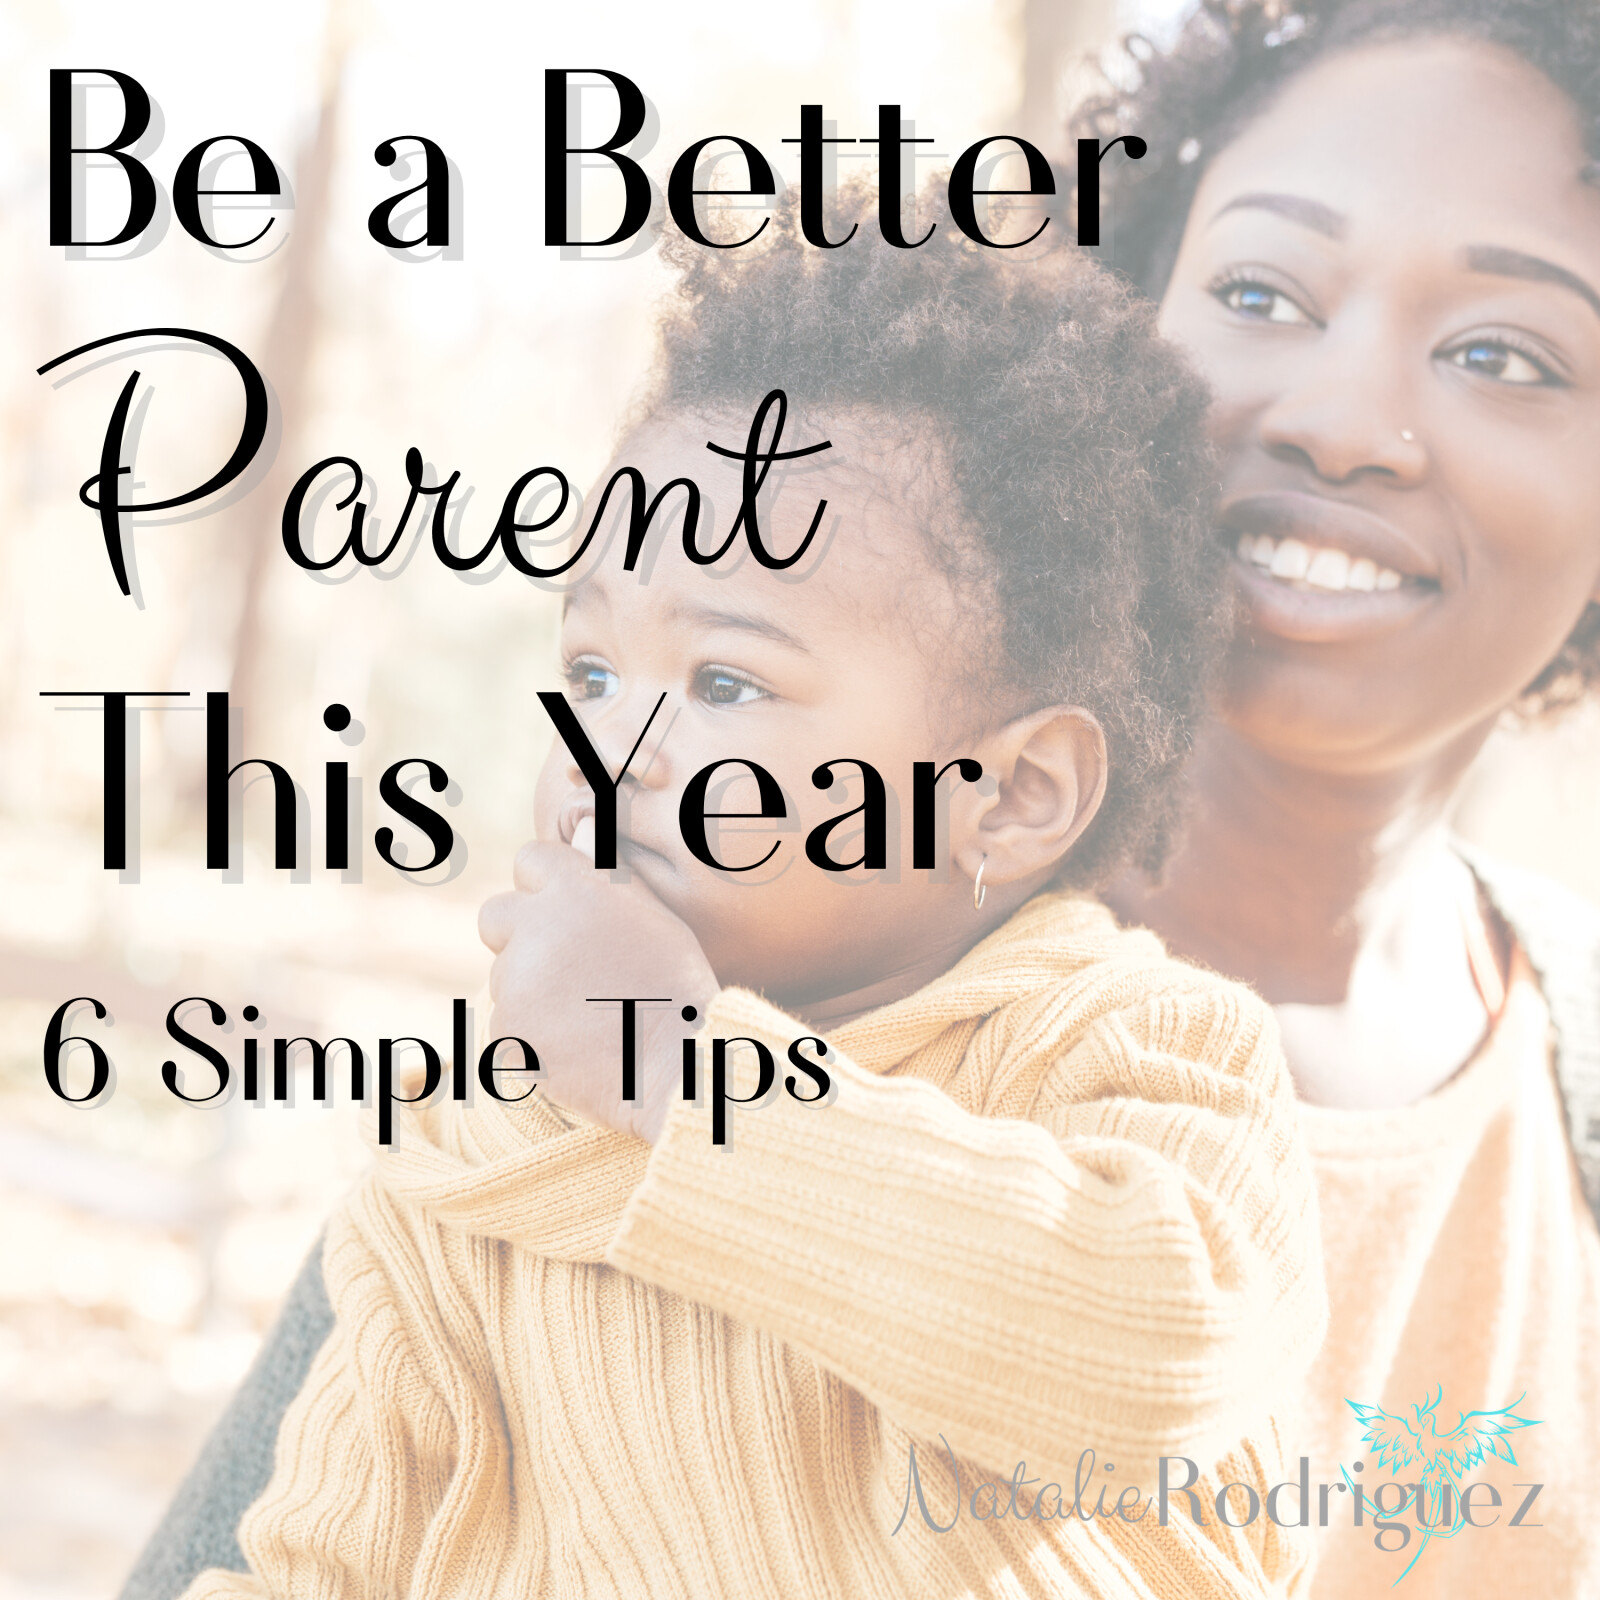 Be a Better Parent This Year: 6 Simple Tips